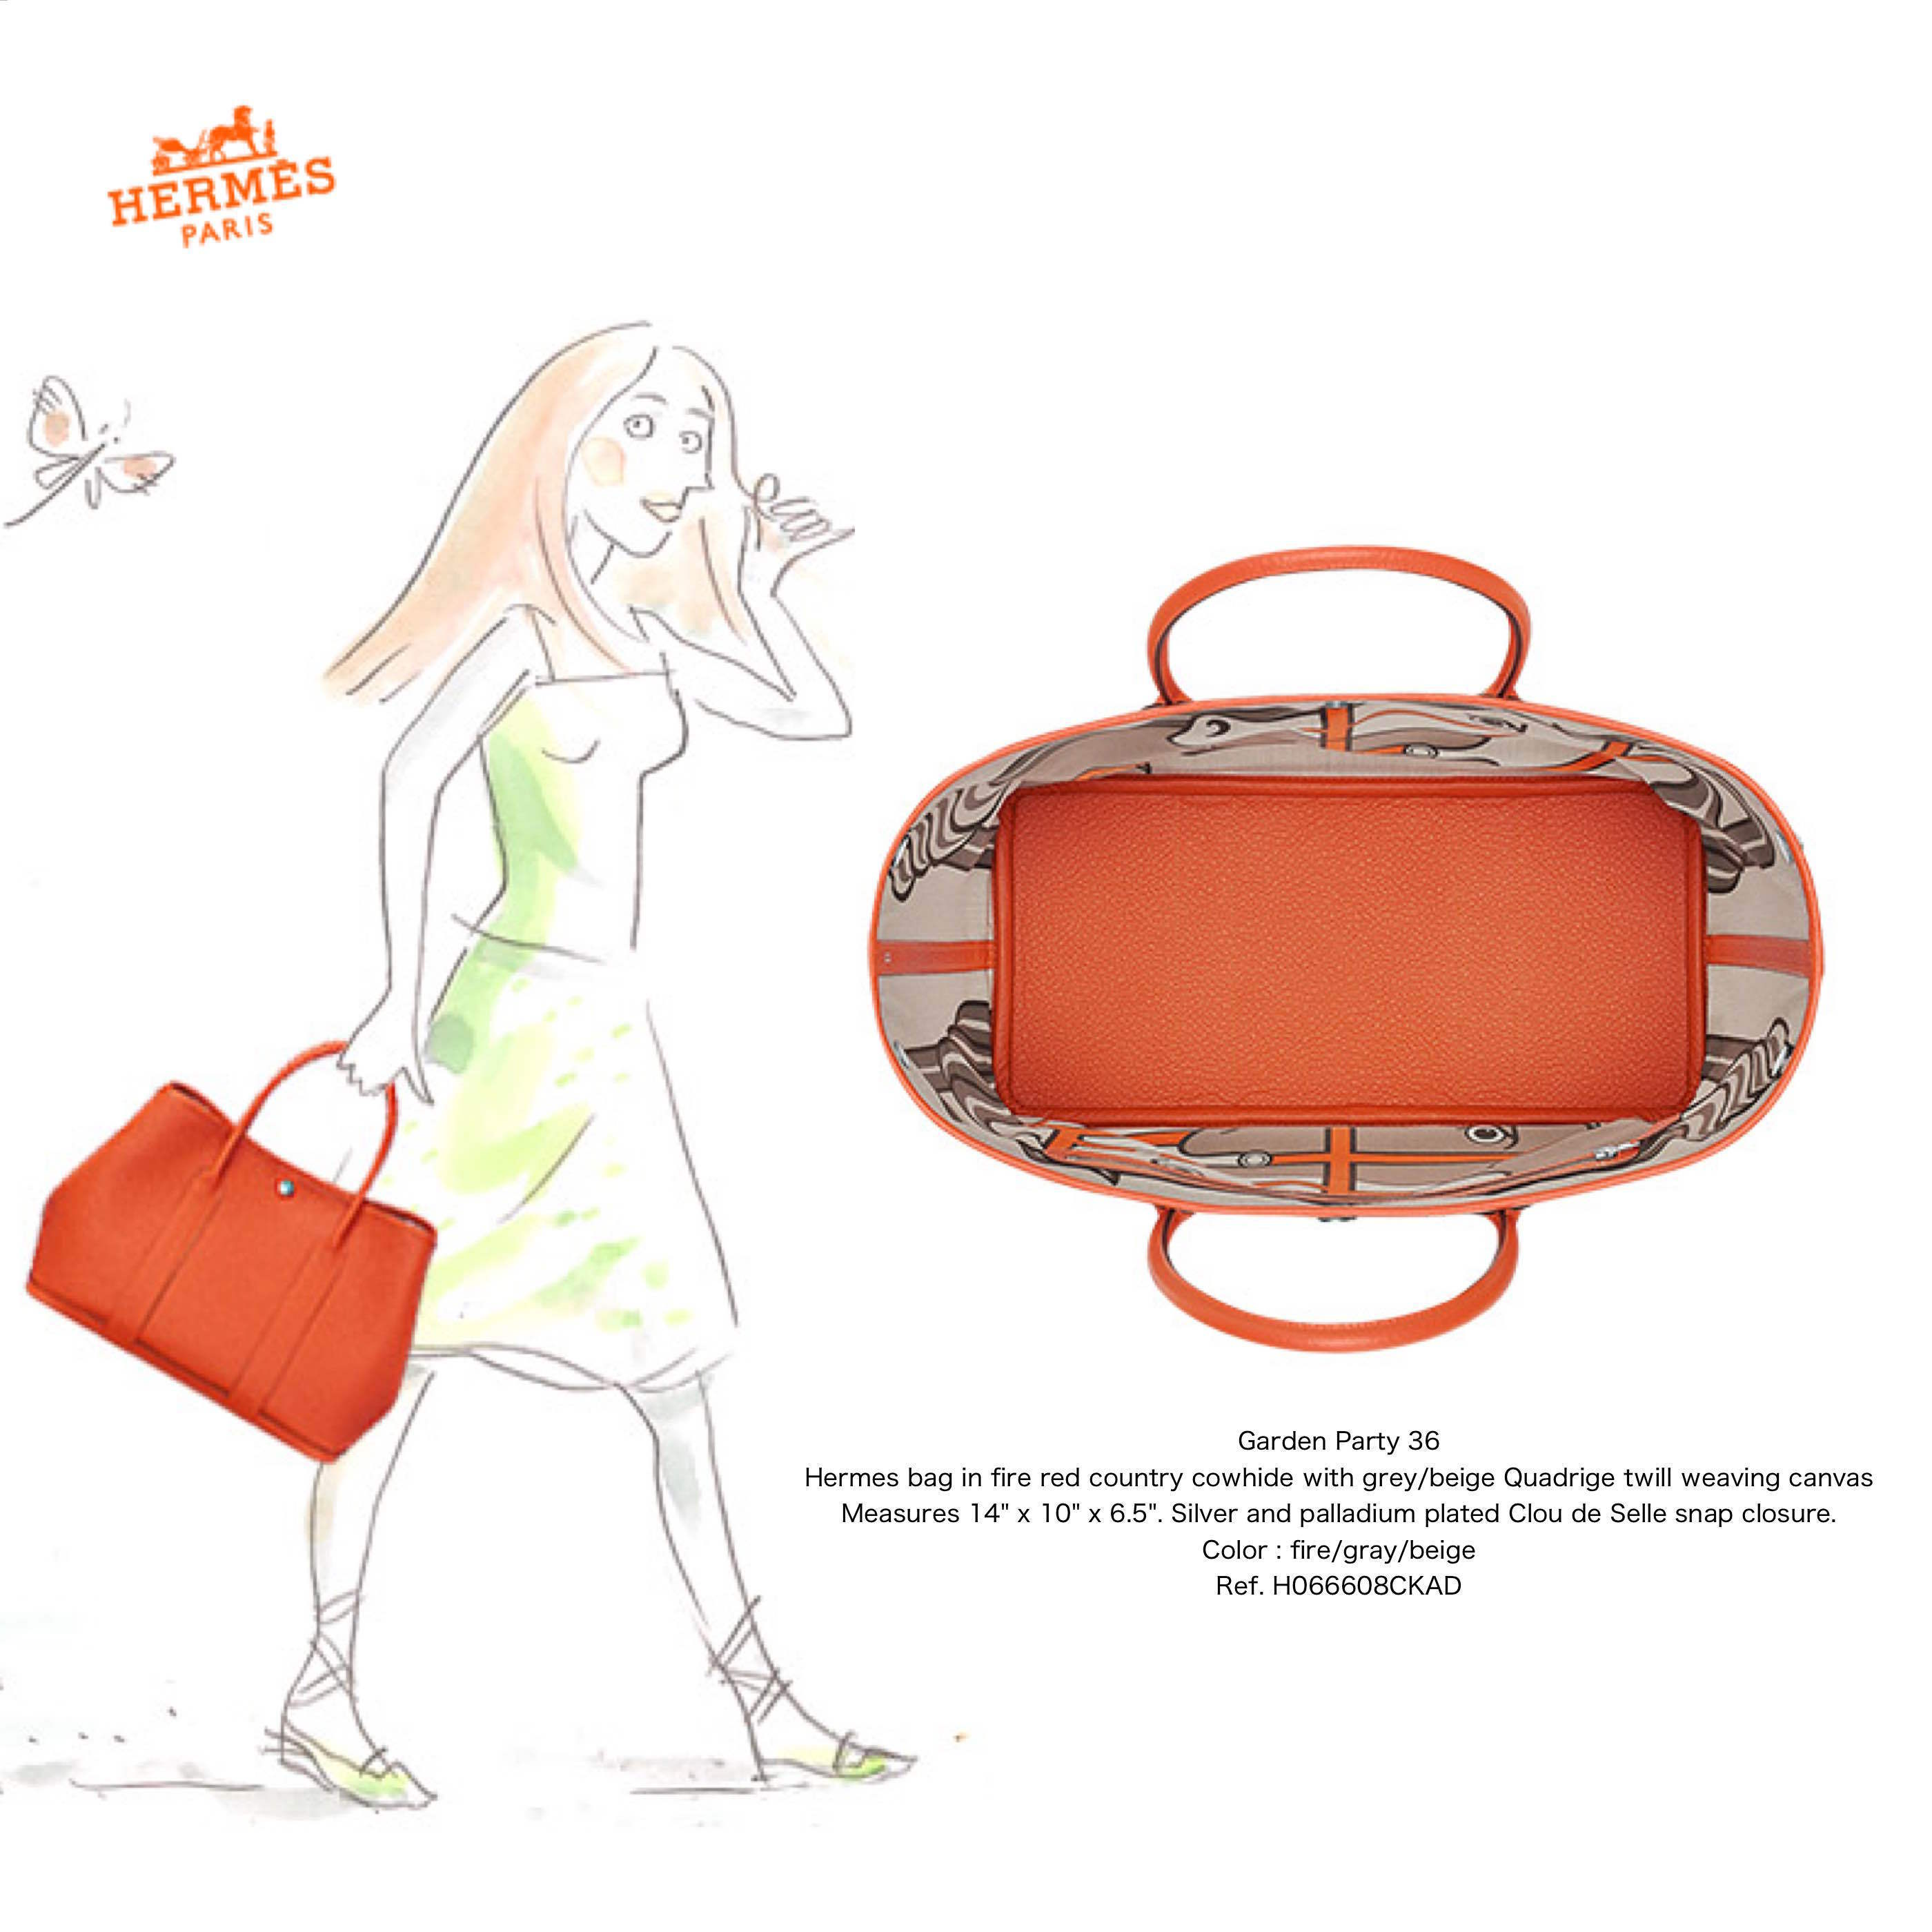 *HERMES*Garden Party 36/fire/gray/beige